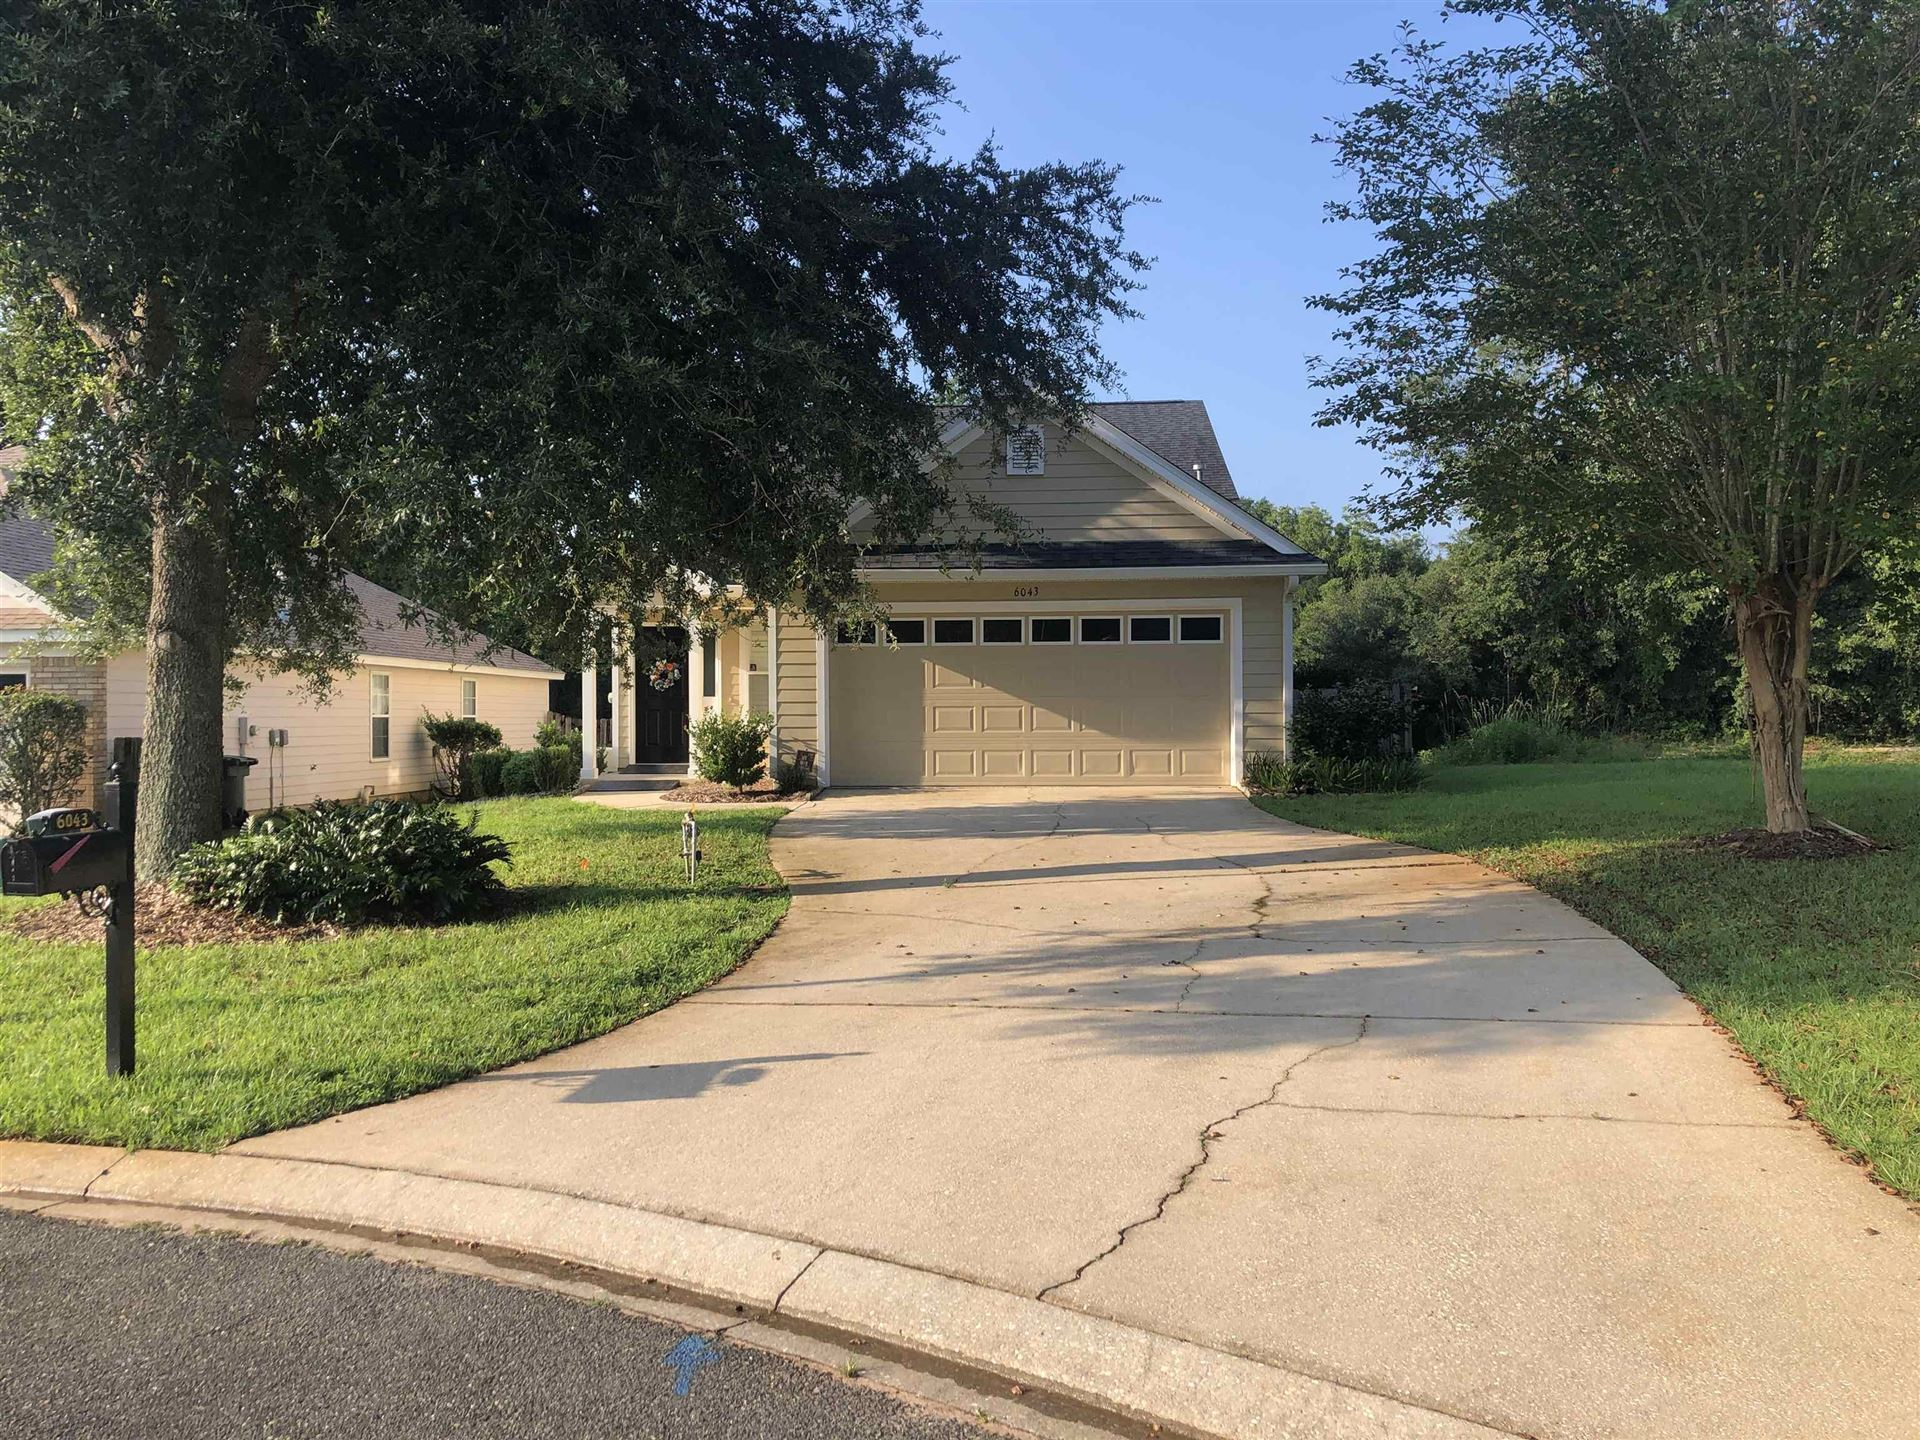 Photo of 6043 Kennelly Court, TALLAHASSEE, FL 32317 (MLS # 337545)